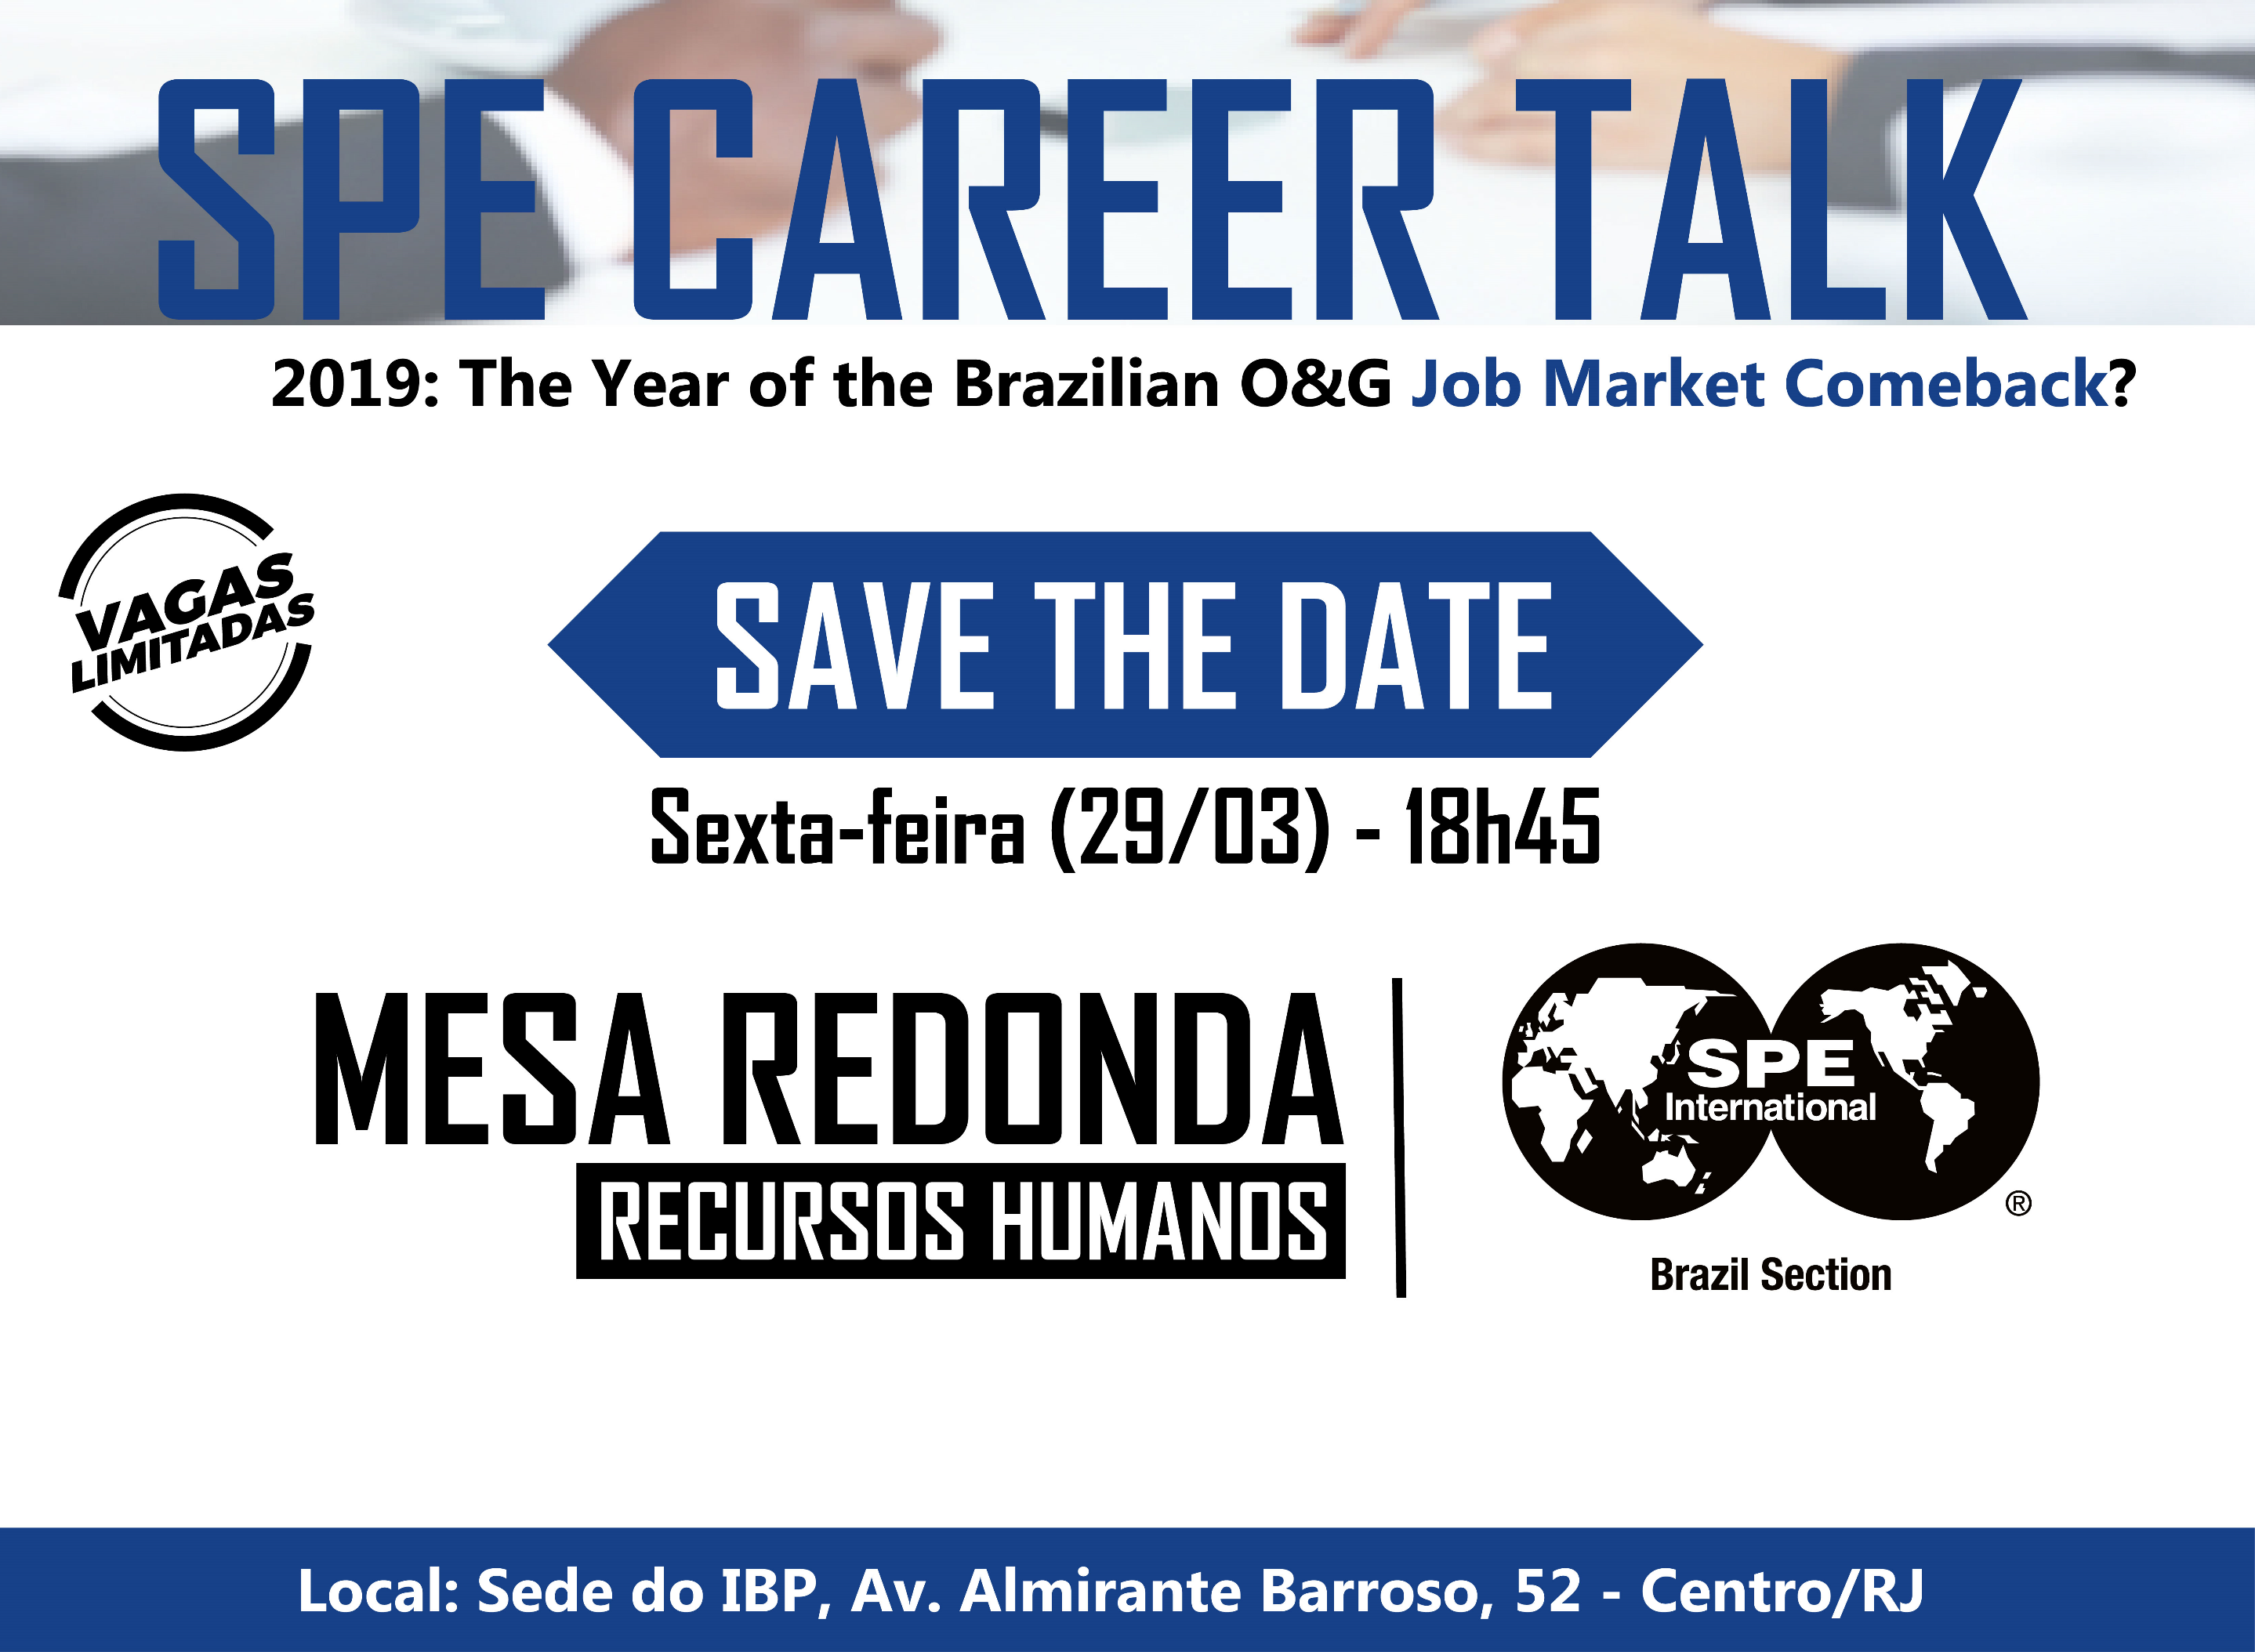 SPE CAREER TALK. 2019: The year of the Brazilian O&G Job Market Comeback?